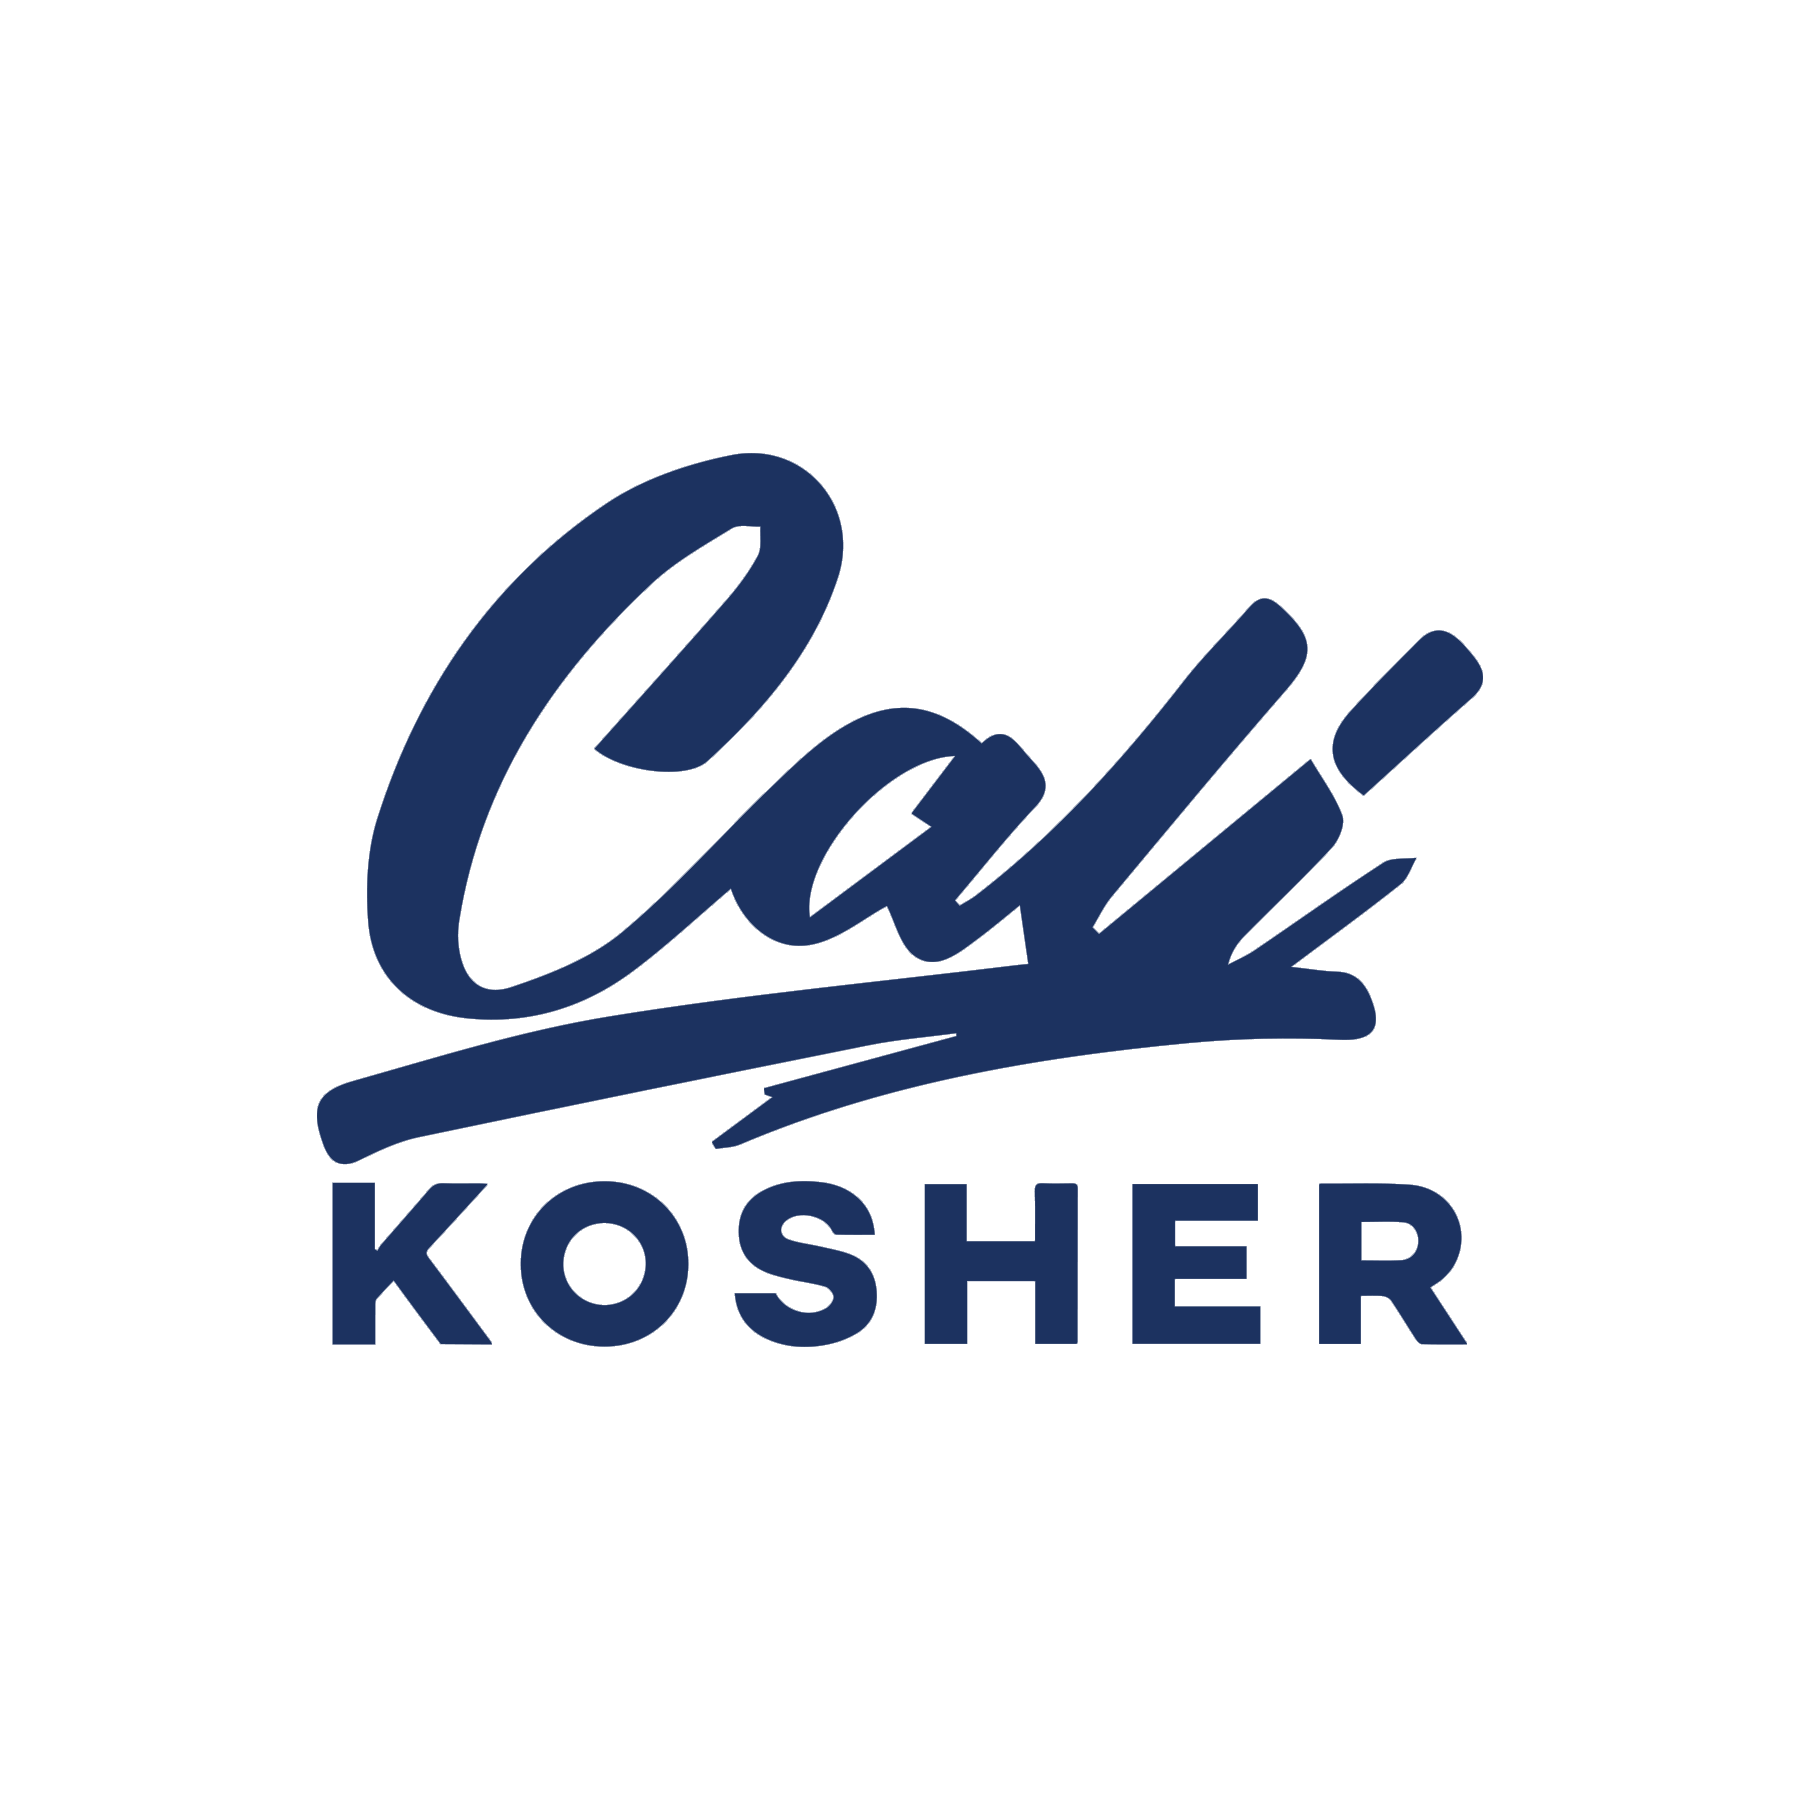 Cali Kosher Delivery - Tracy